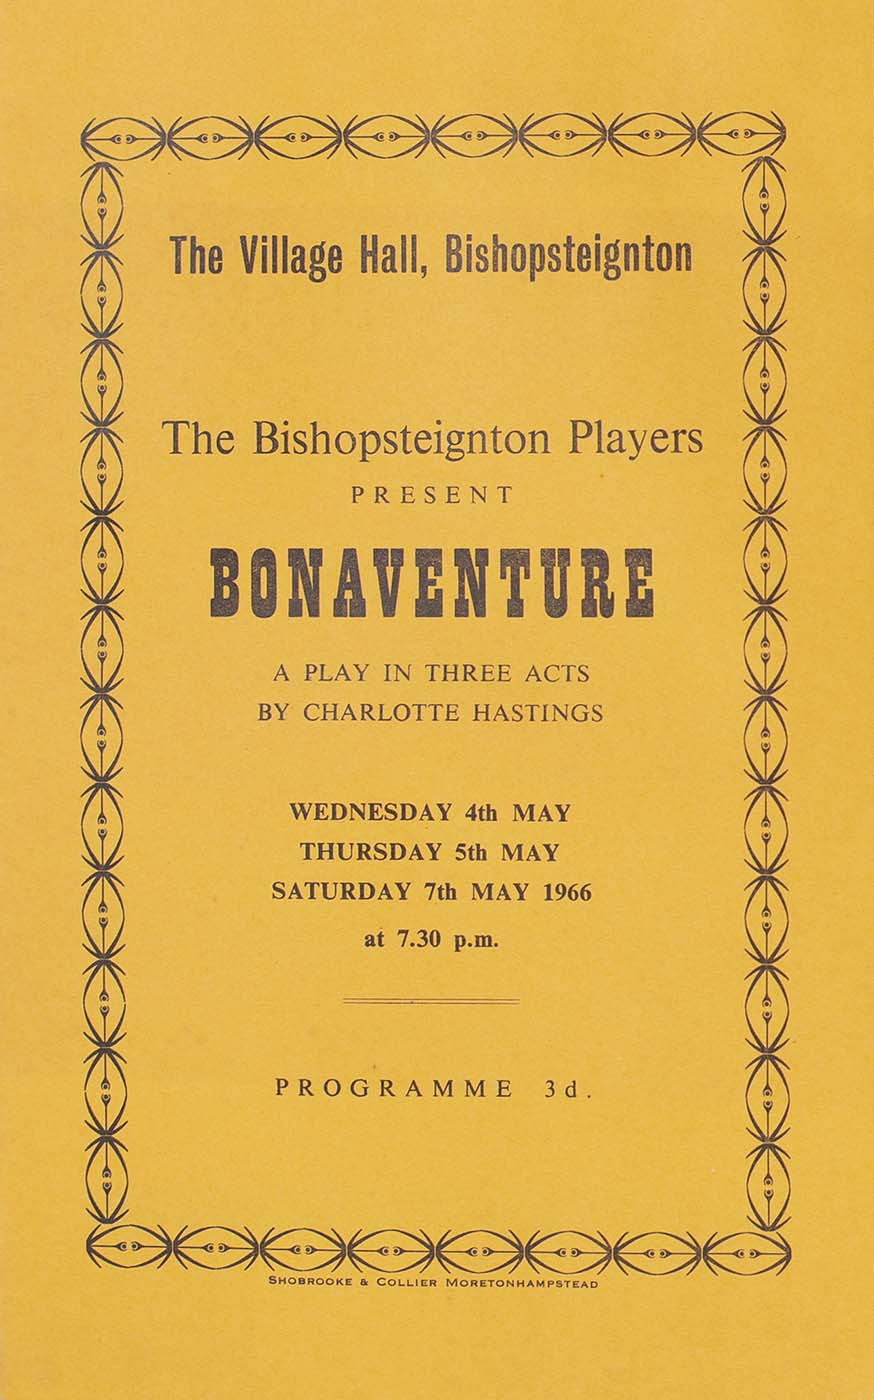 Programme for the play 'Bonaventure' presented by Bishopsteignton Players front